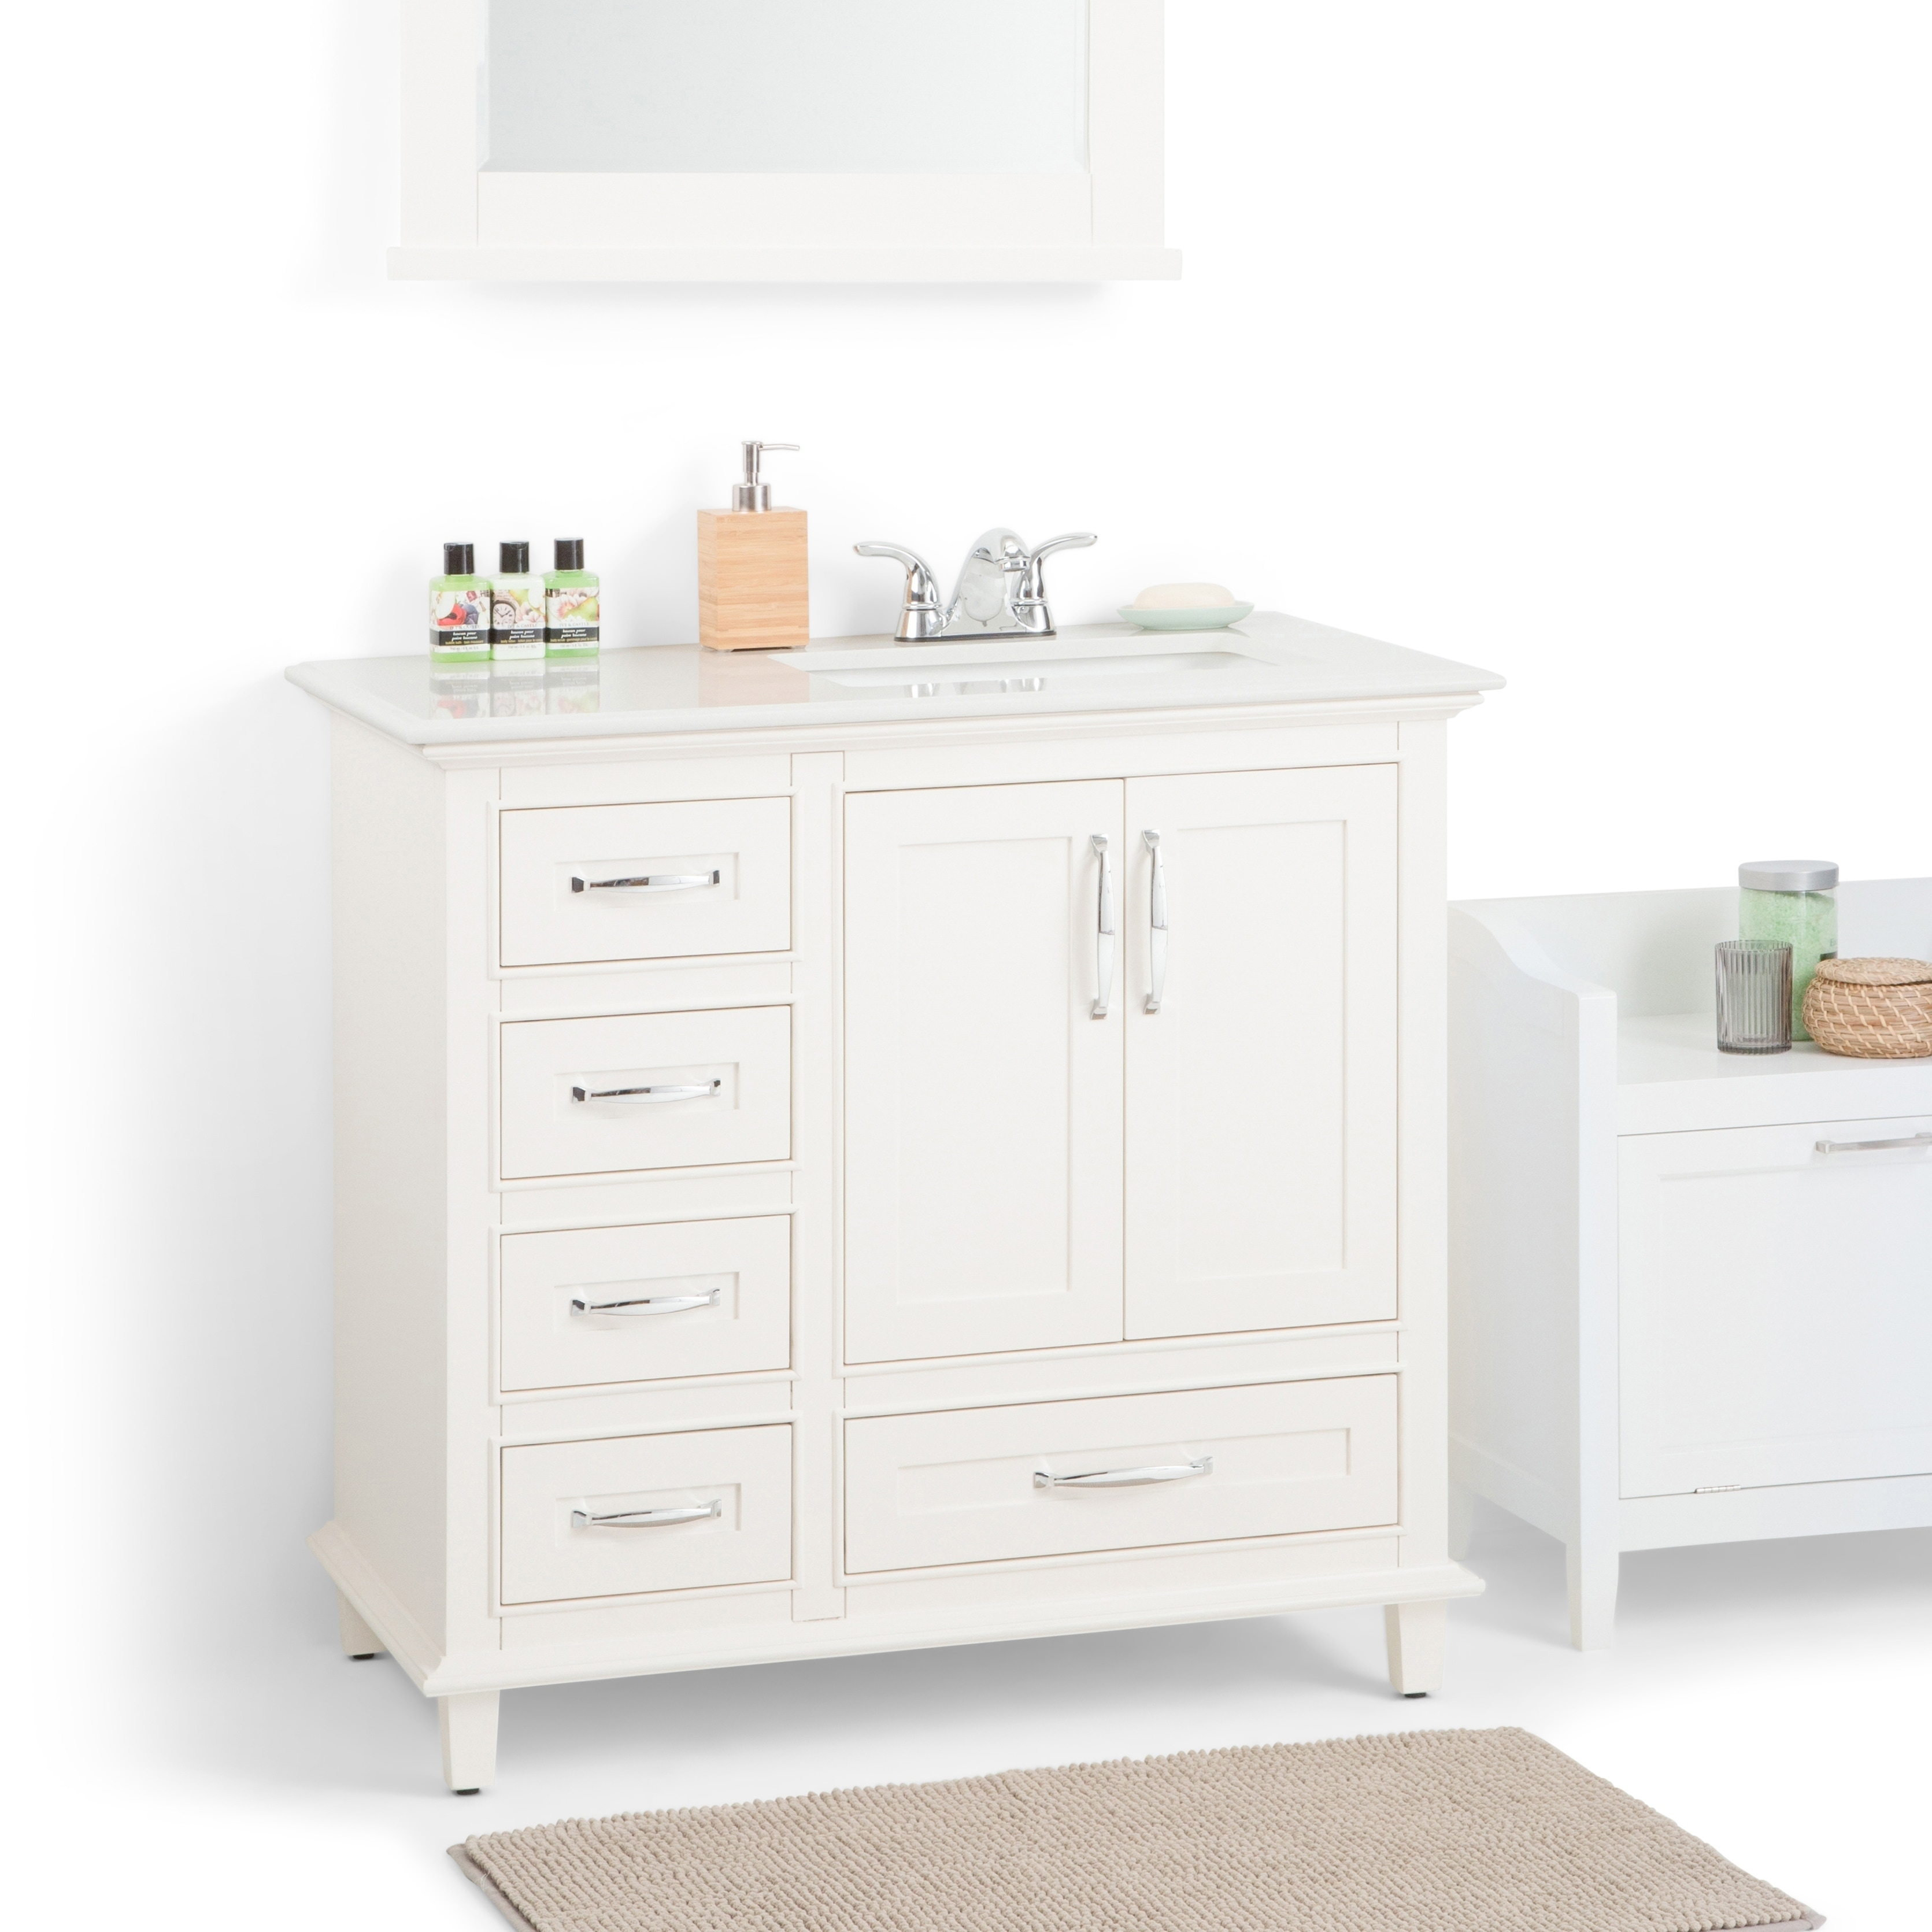 inch bella bathroom carrara only vanity home full kitchenbathcollection design of size elegant cameron modern cabinet white